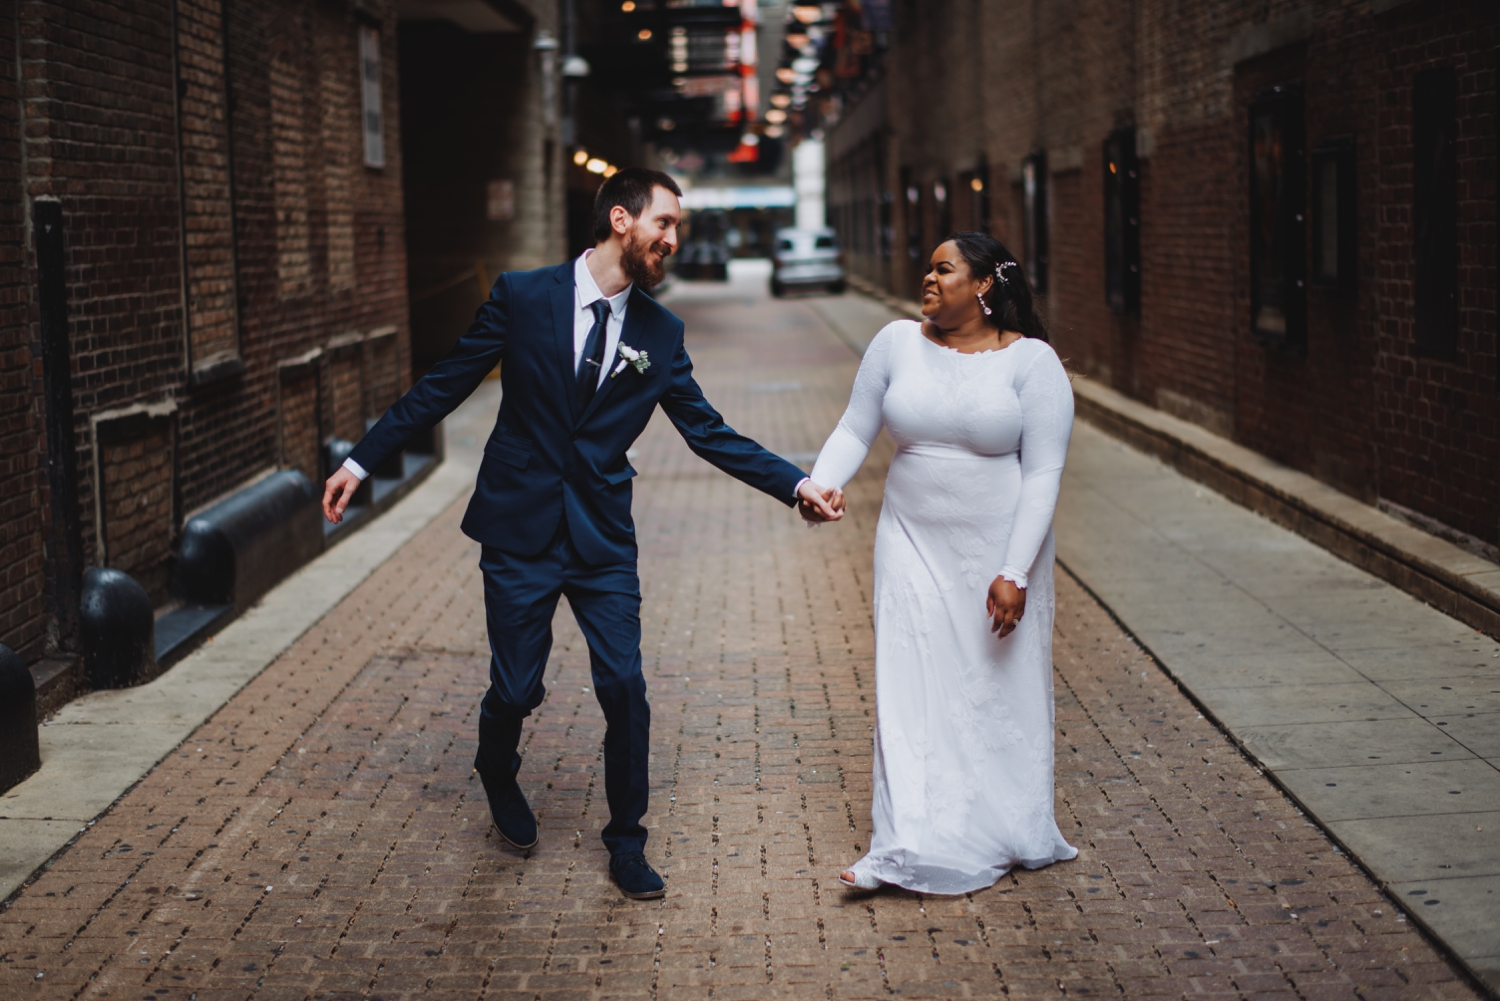 Chicago Elopement photographer - The Adamkovi, bride and groom being funny